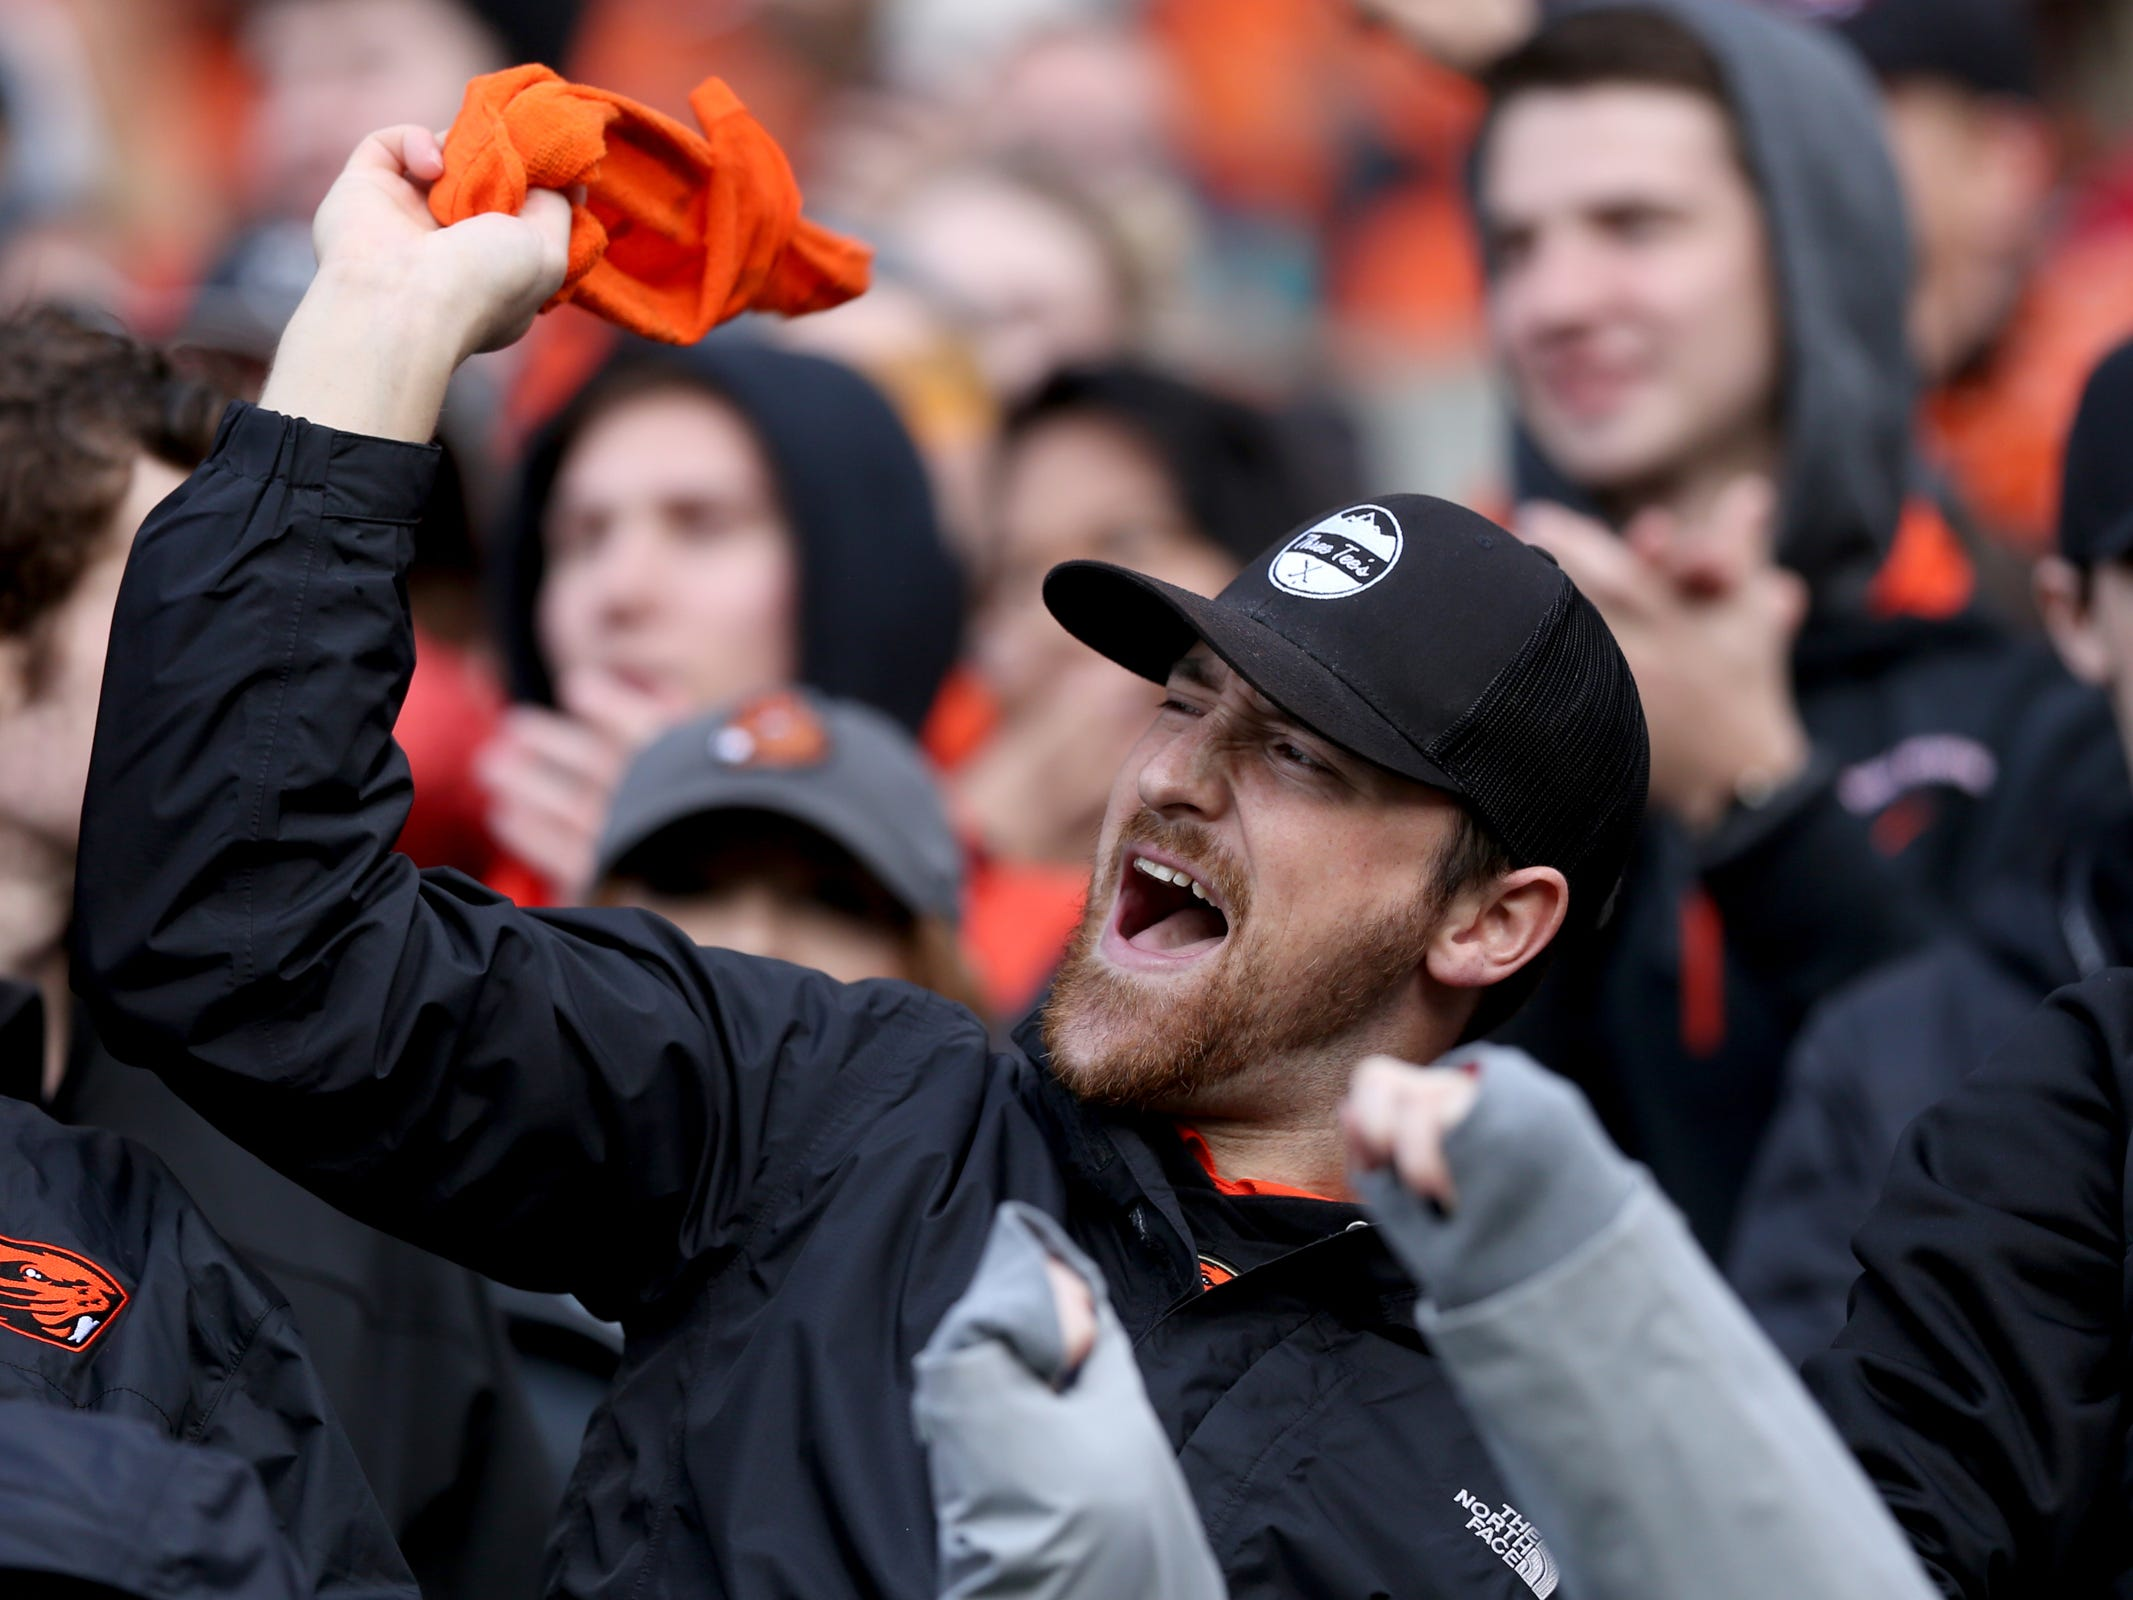 Oregon State fans celebrate a play in the Oregon vs. Oregon State Civil war football game at Oregon State University in Corvallis on Friday, Nov. 23, 2018.